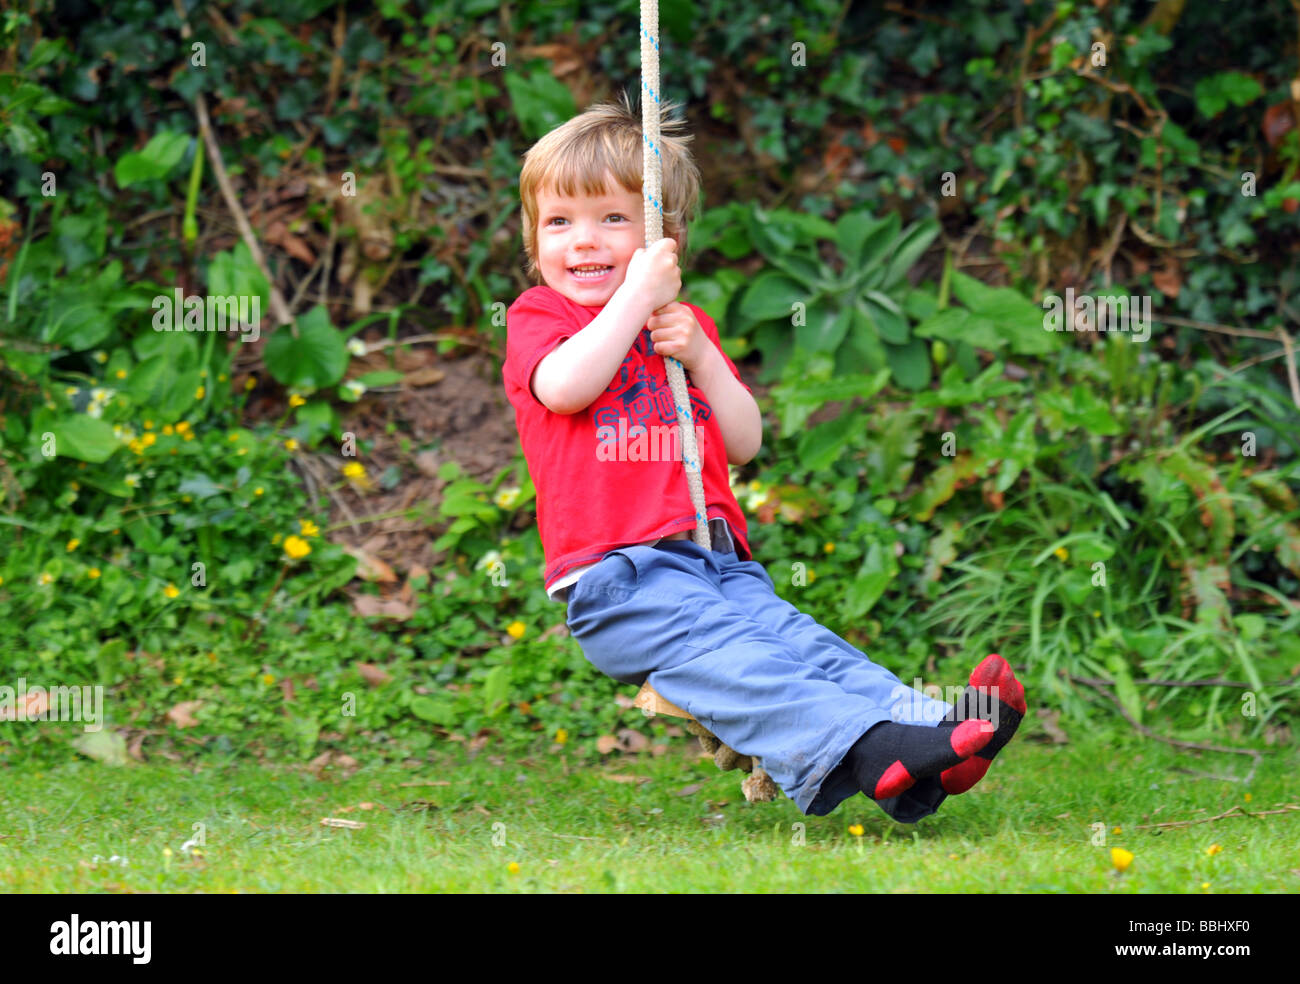 Boy on a rope swing, child swinging on a rope - Stock Image